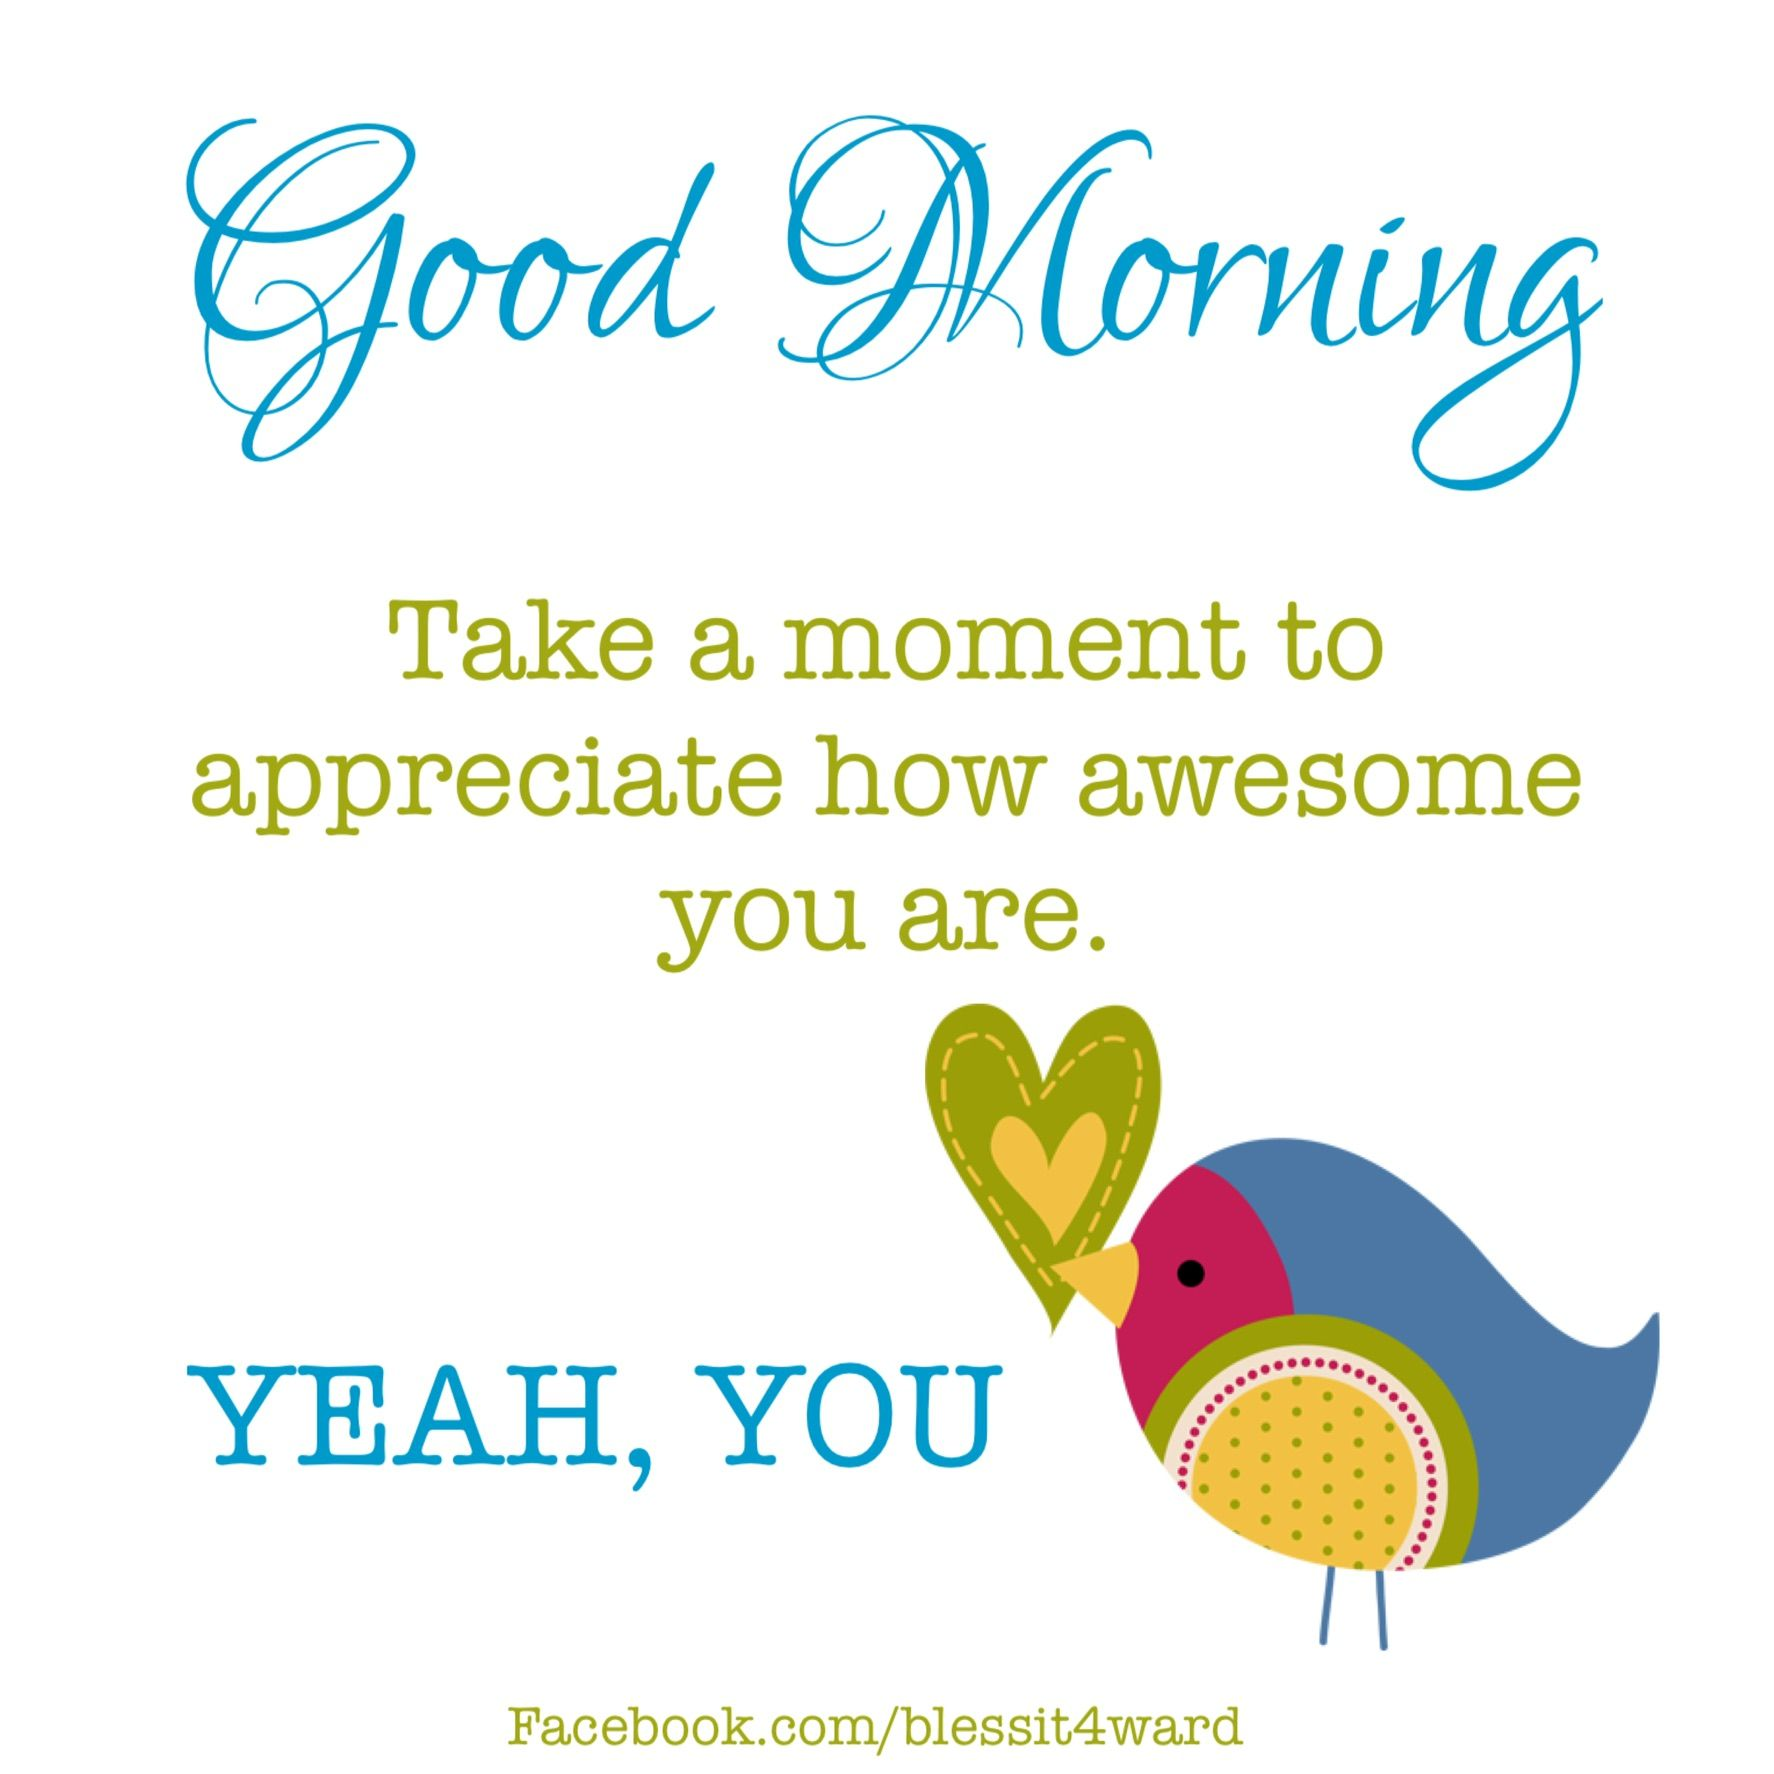 Good Morning Take A Moment To Appreciate How Awesome You Are X Good Morning Friends Quotes Good Morning Quotes For Him Morning Greetings Quotes